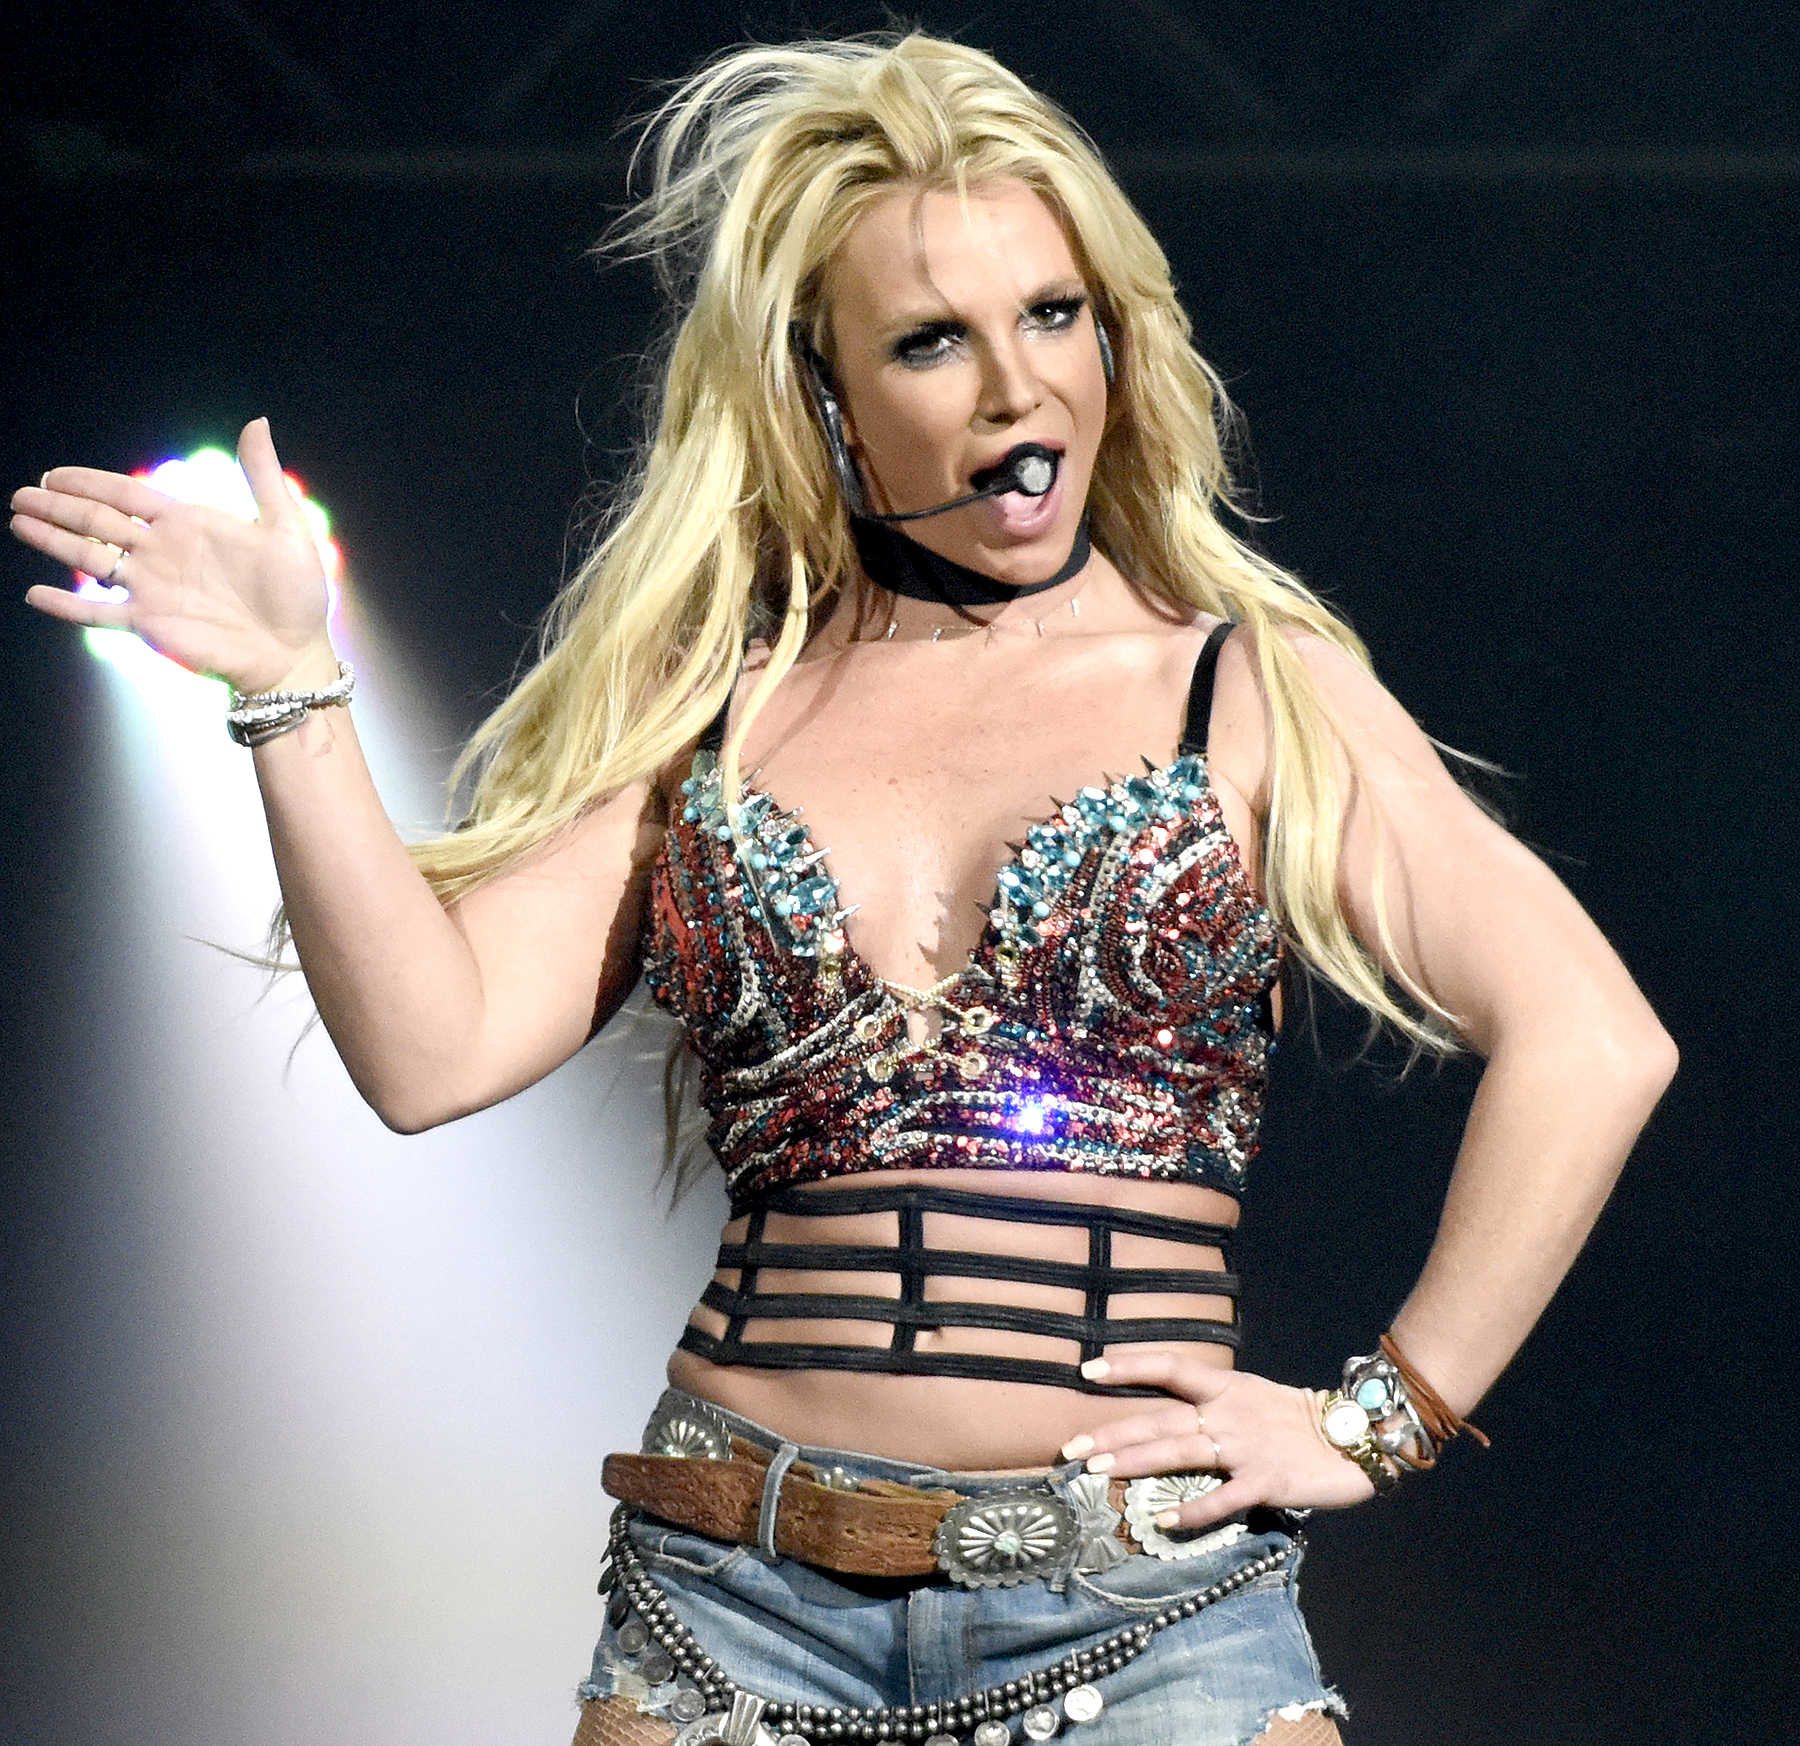 Britney Spears performs during Now! 99.7 Triple Ho Show 7.0 at SAP Center on December 3, 2016 in San Jose, California.